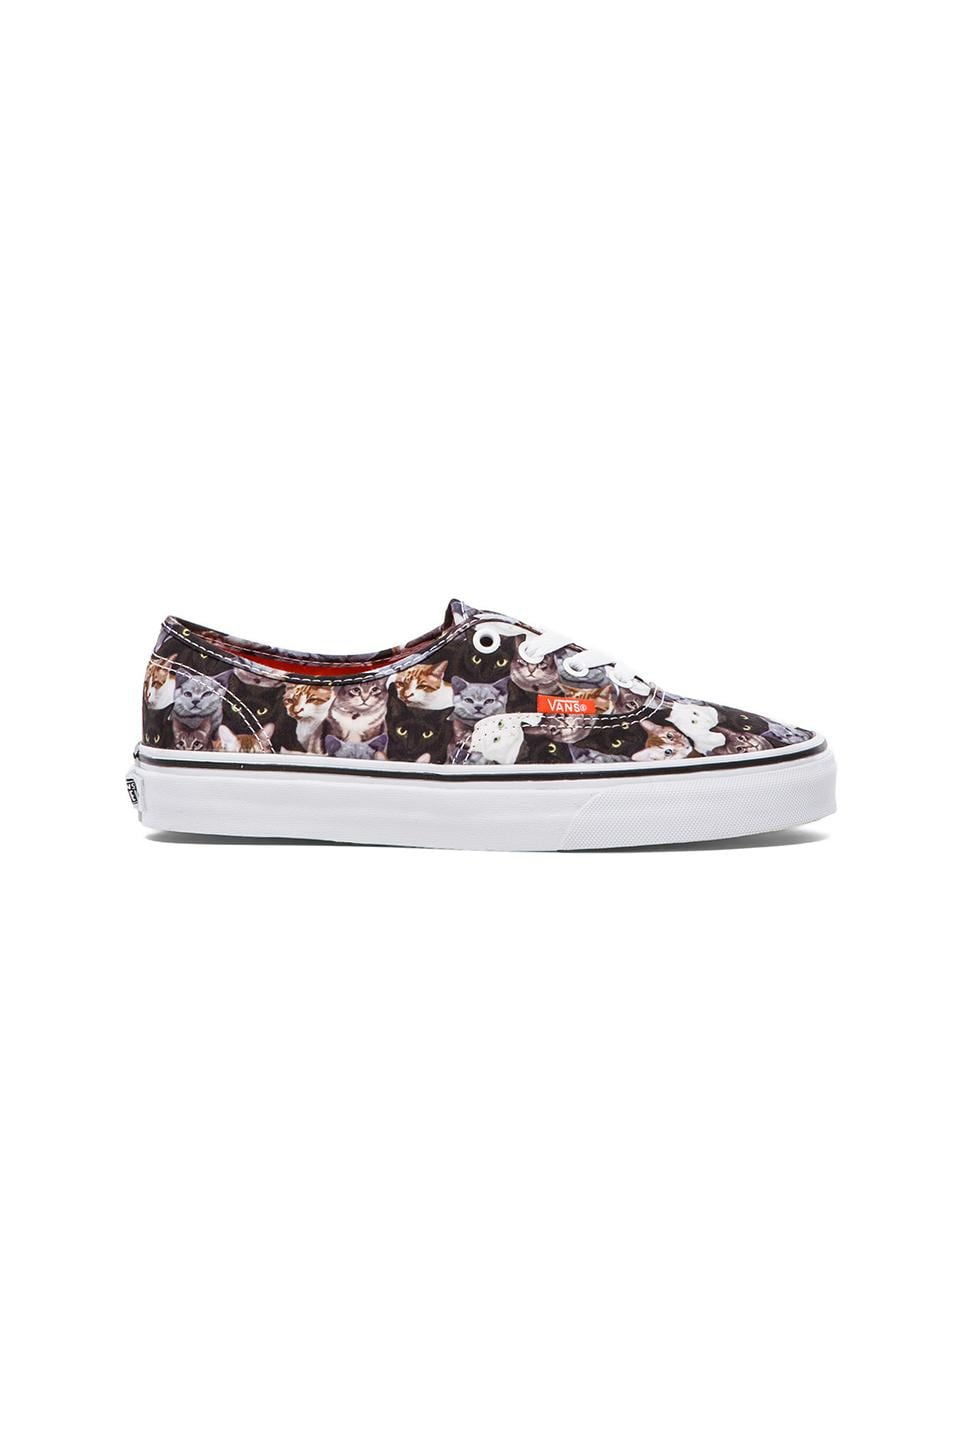 Vans Authentic Sneaker in Cats